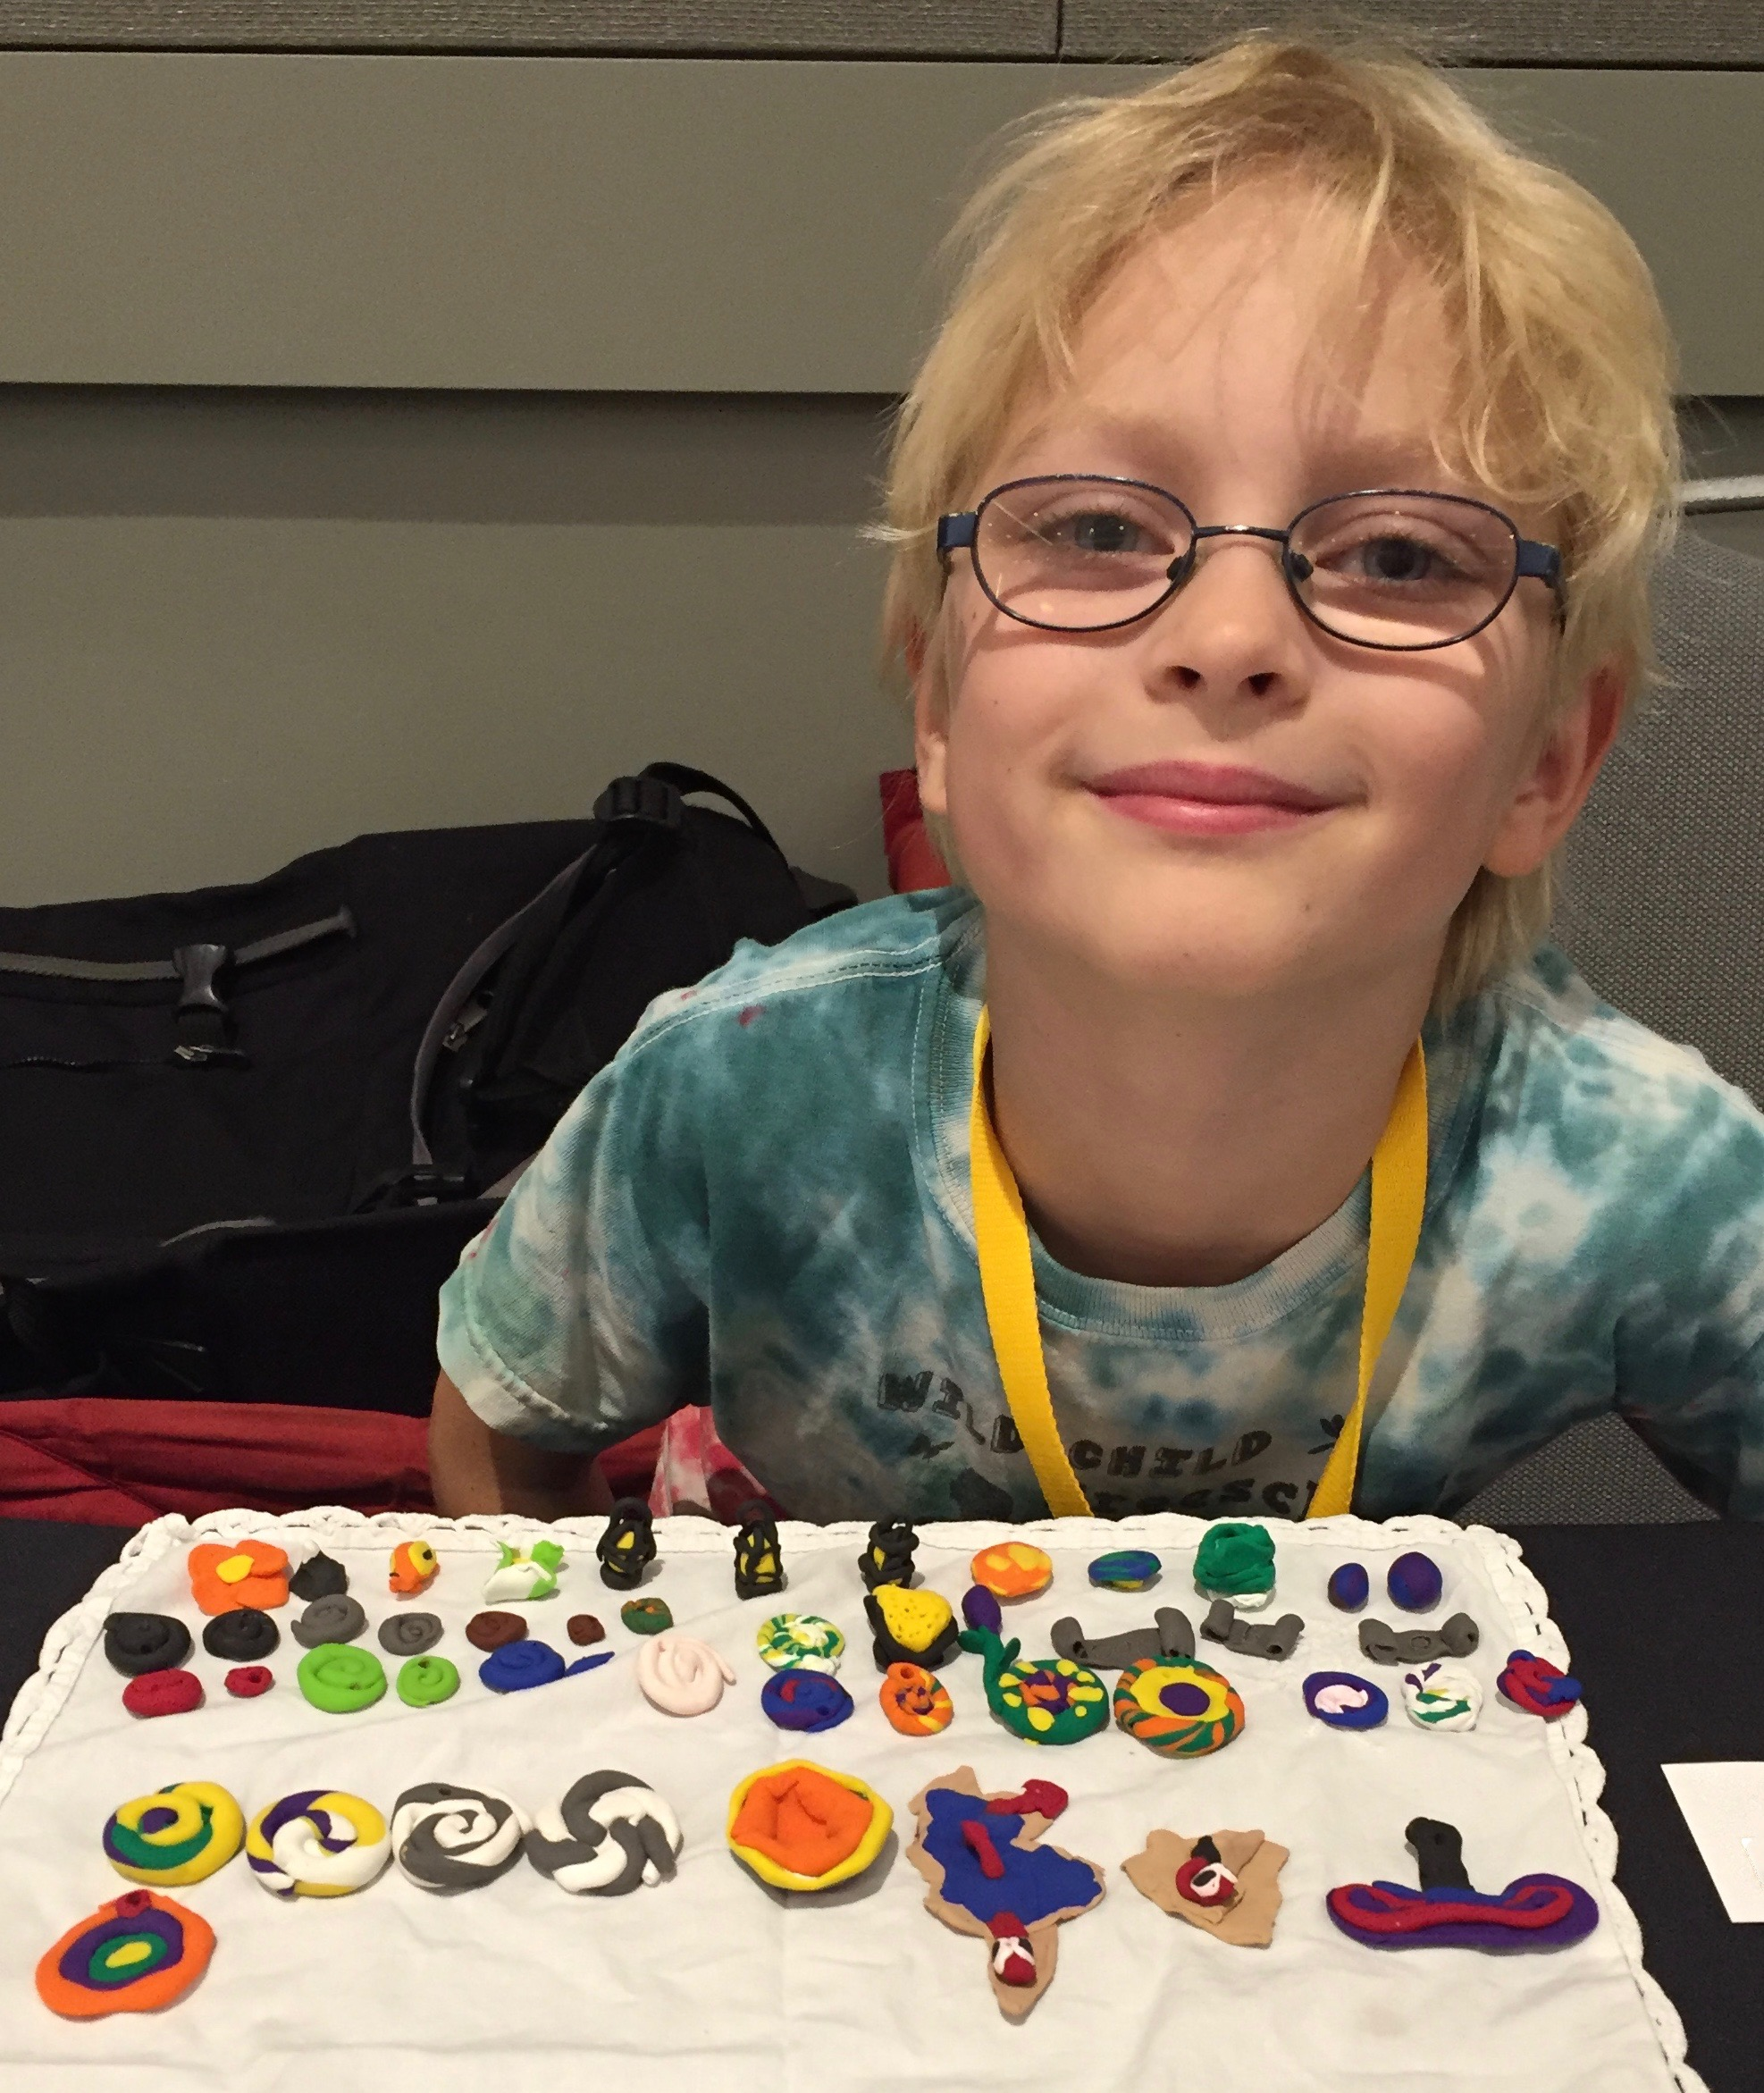 arts crafts projects for kids az homeschooling boy selling his clay crafts at homeschool conference